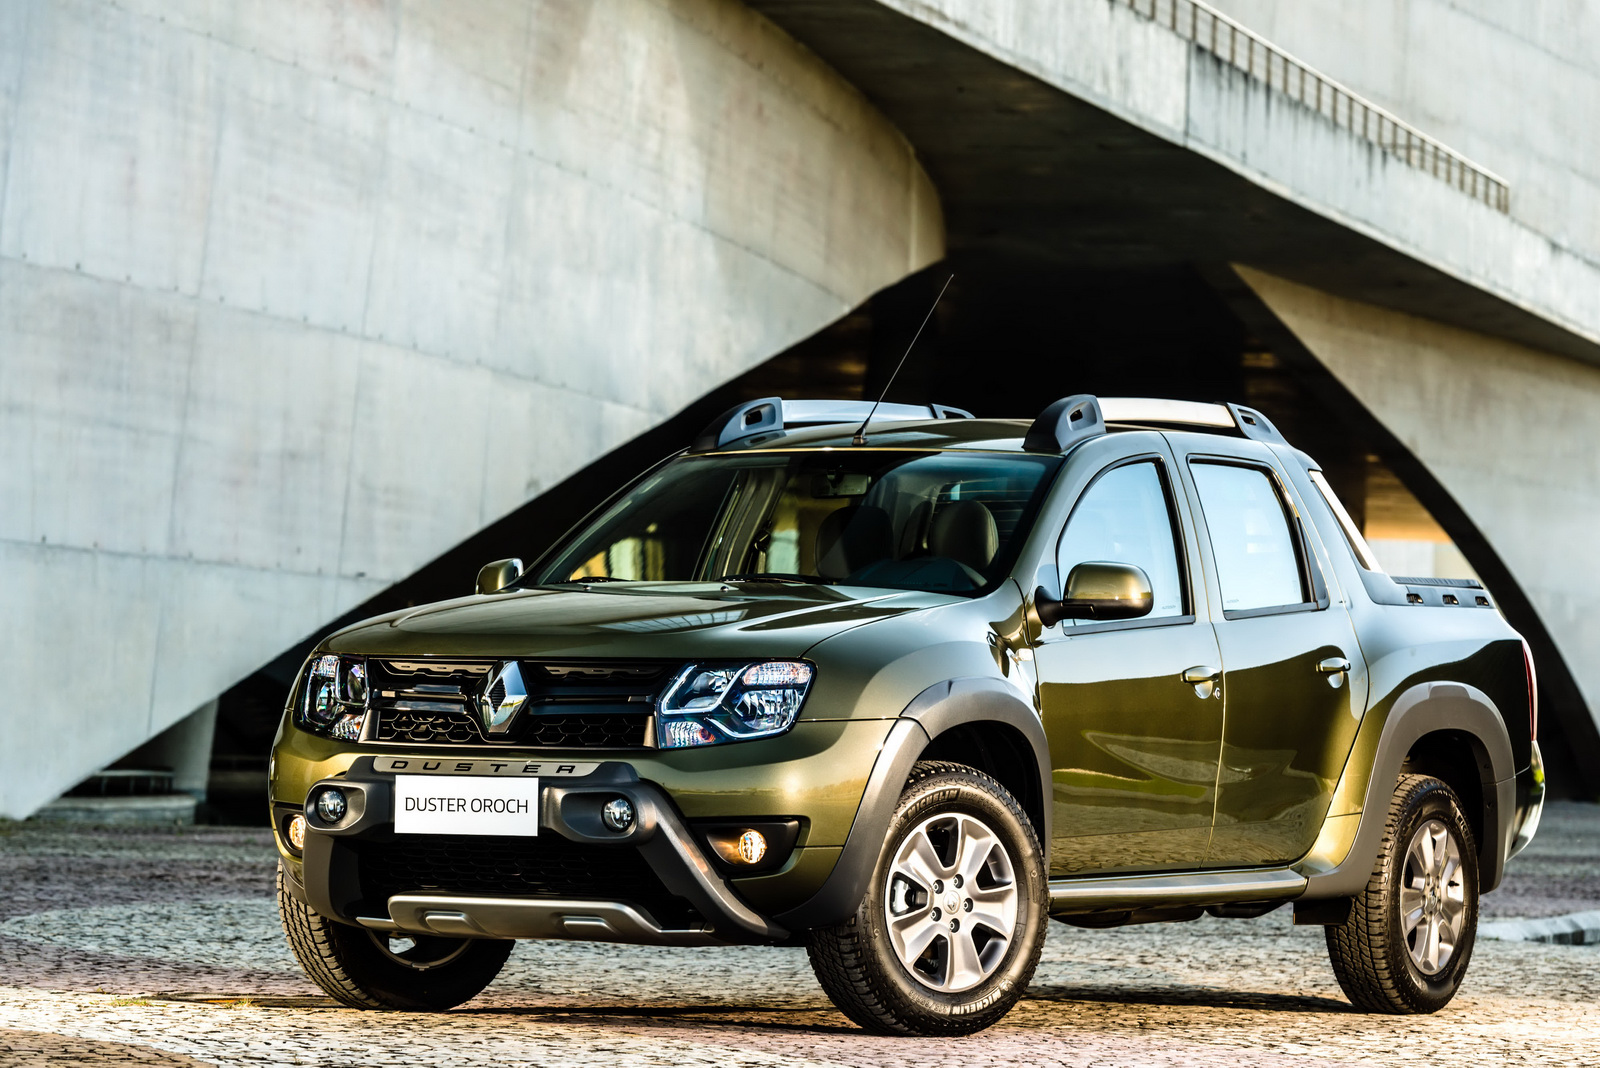 2015 Renault Duster Oroch Pickup All New Cars New Zealand